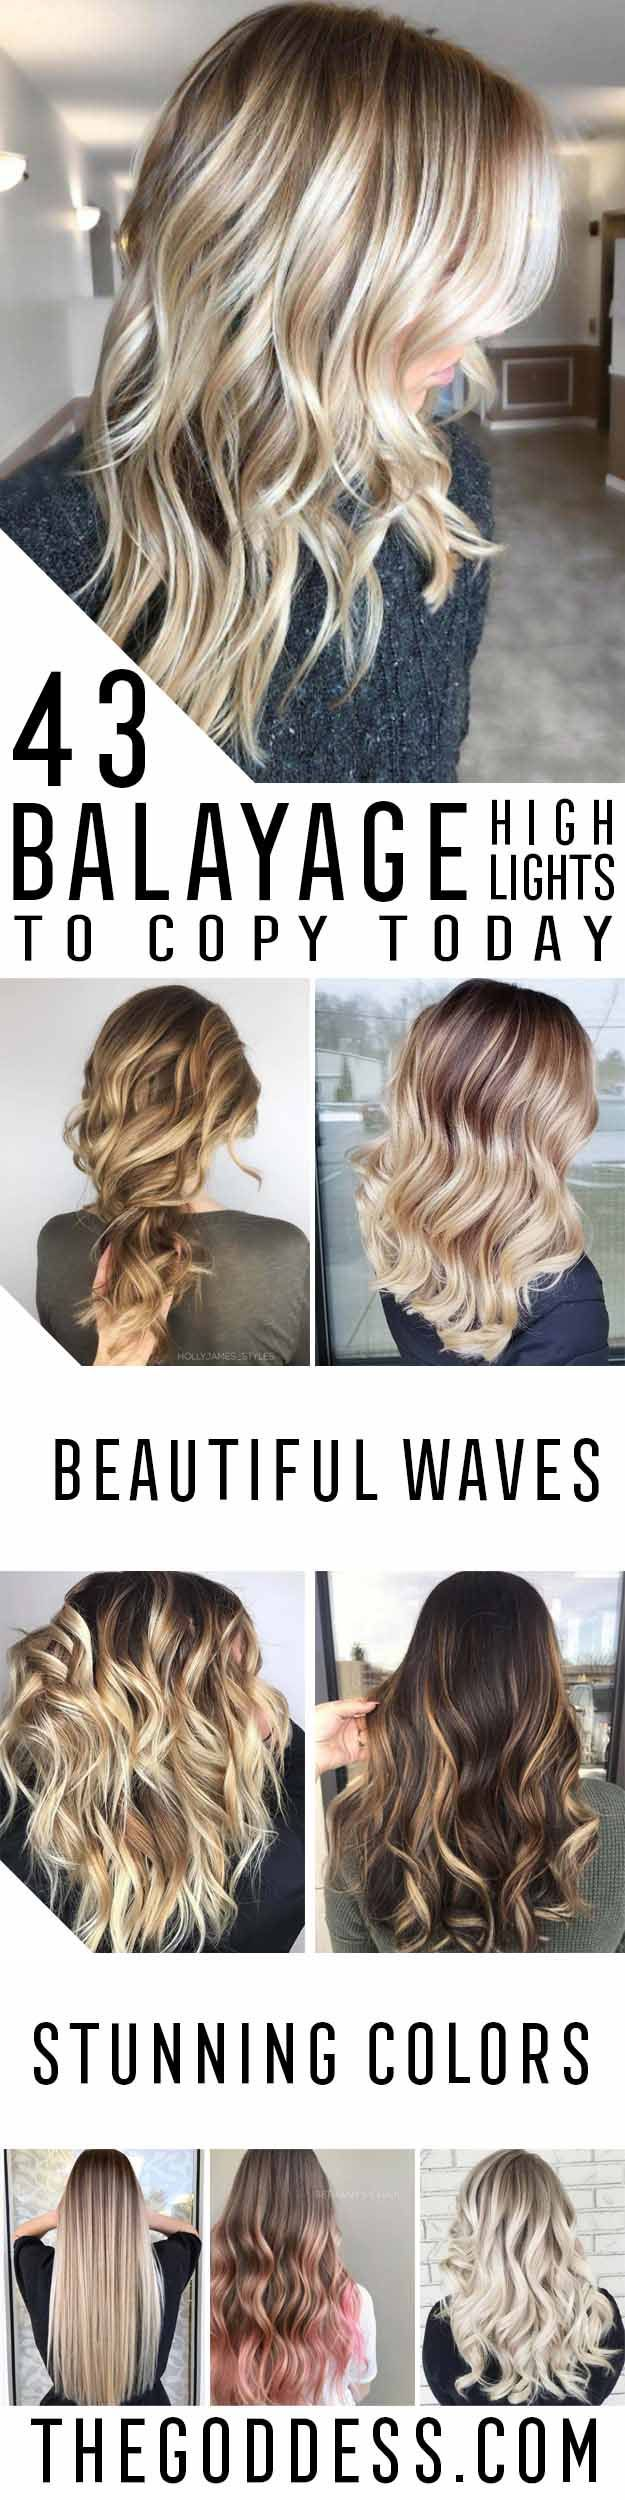 Balayage High Lights To Copy Today - Simple, Cute, And Easy Ideas For Blonde Hig...